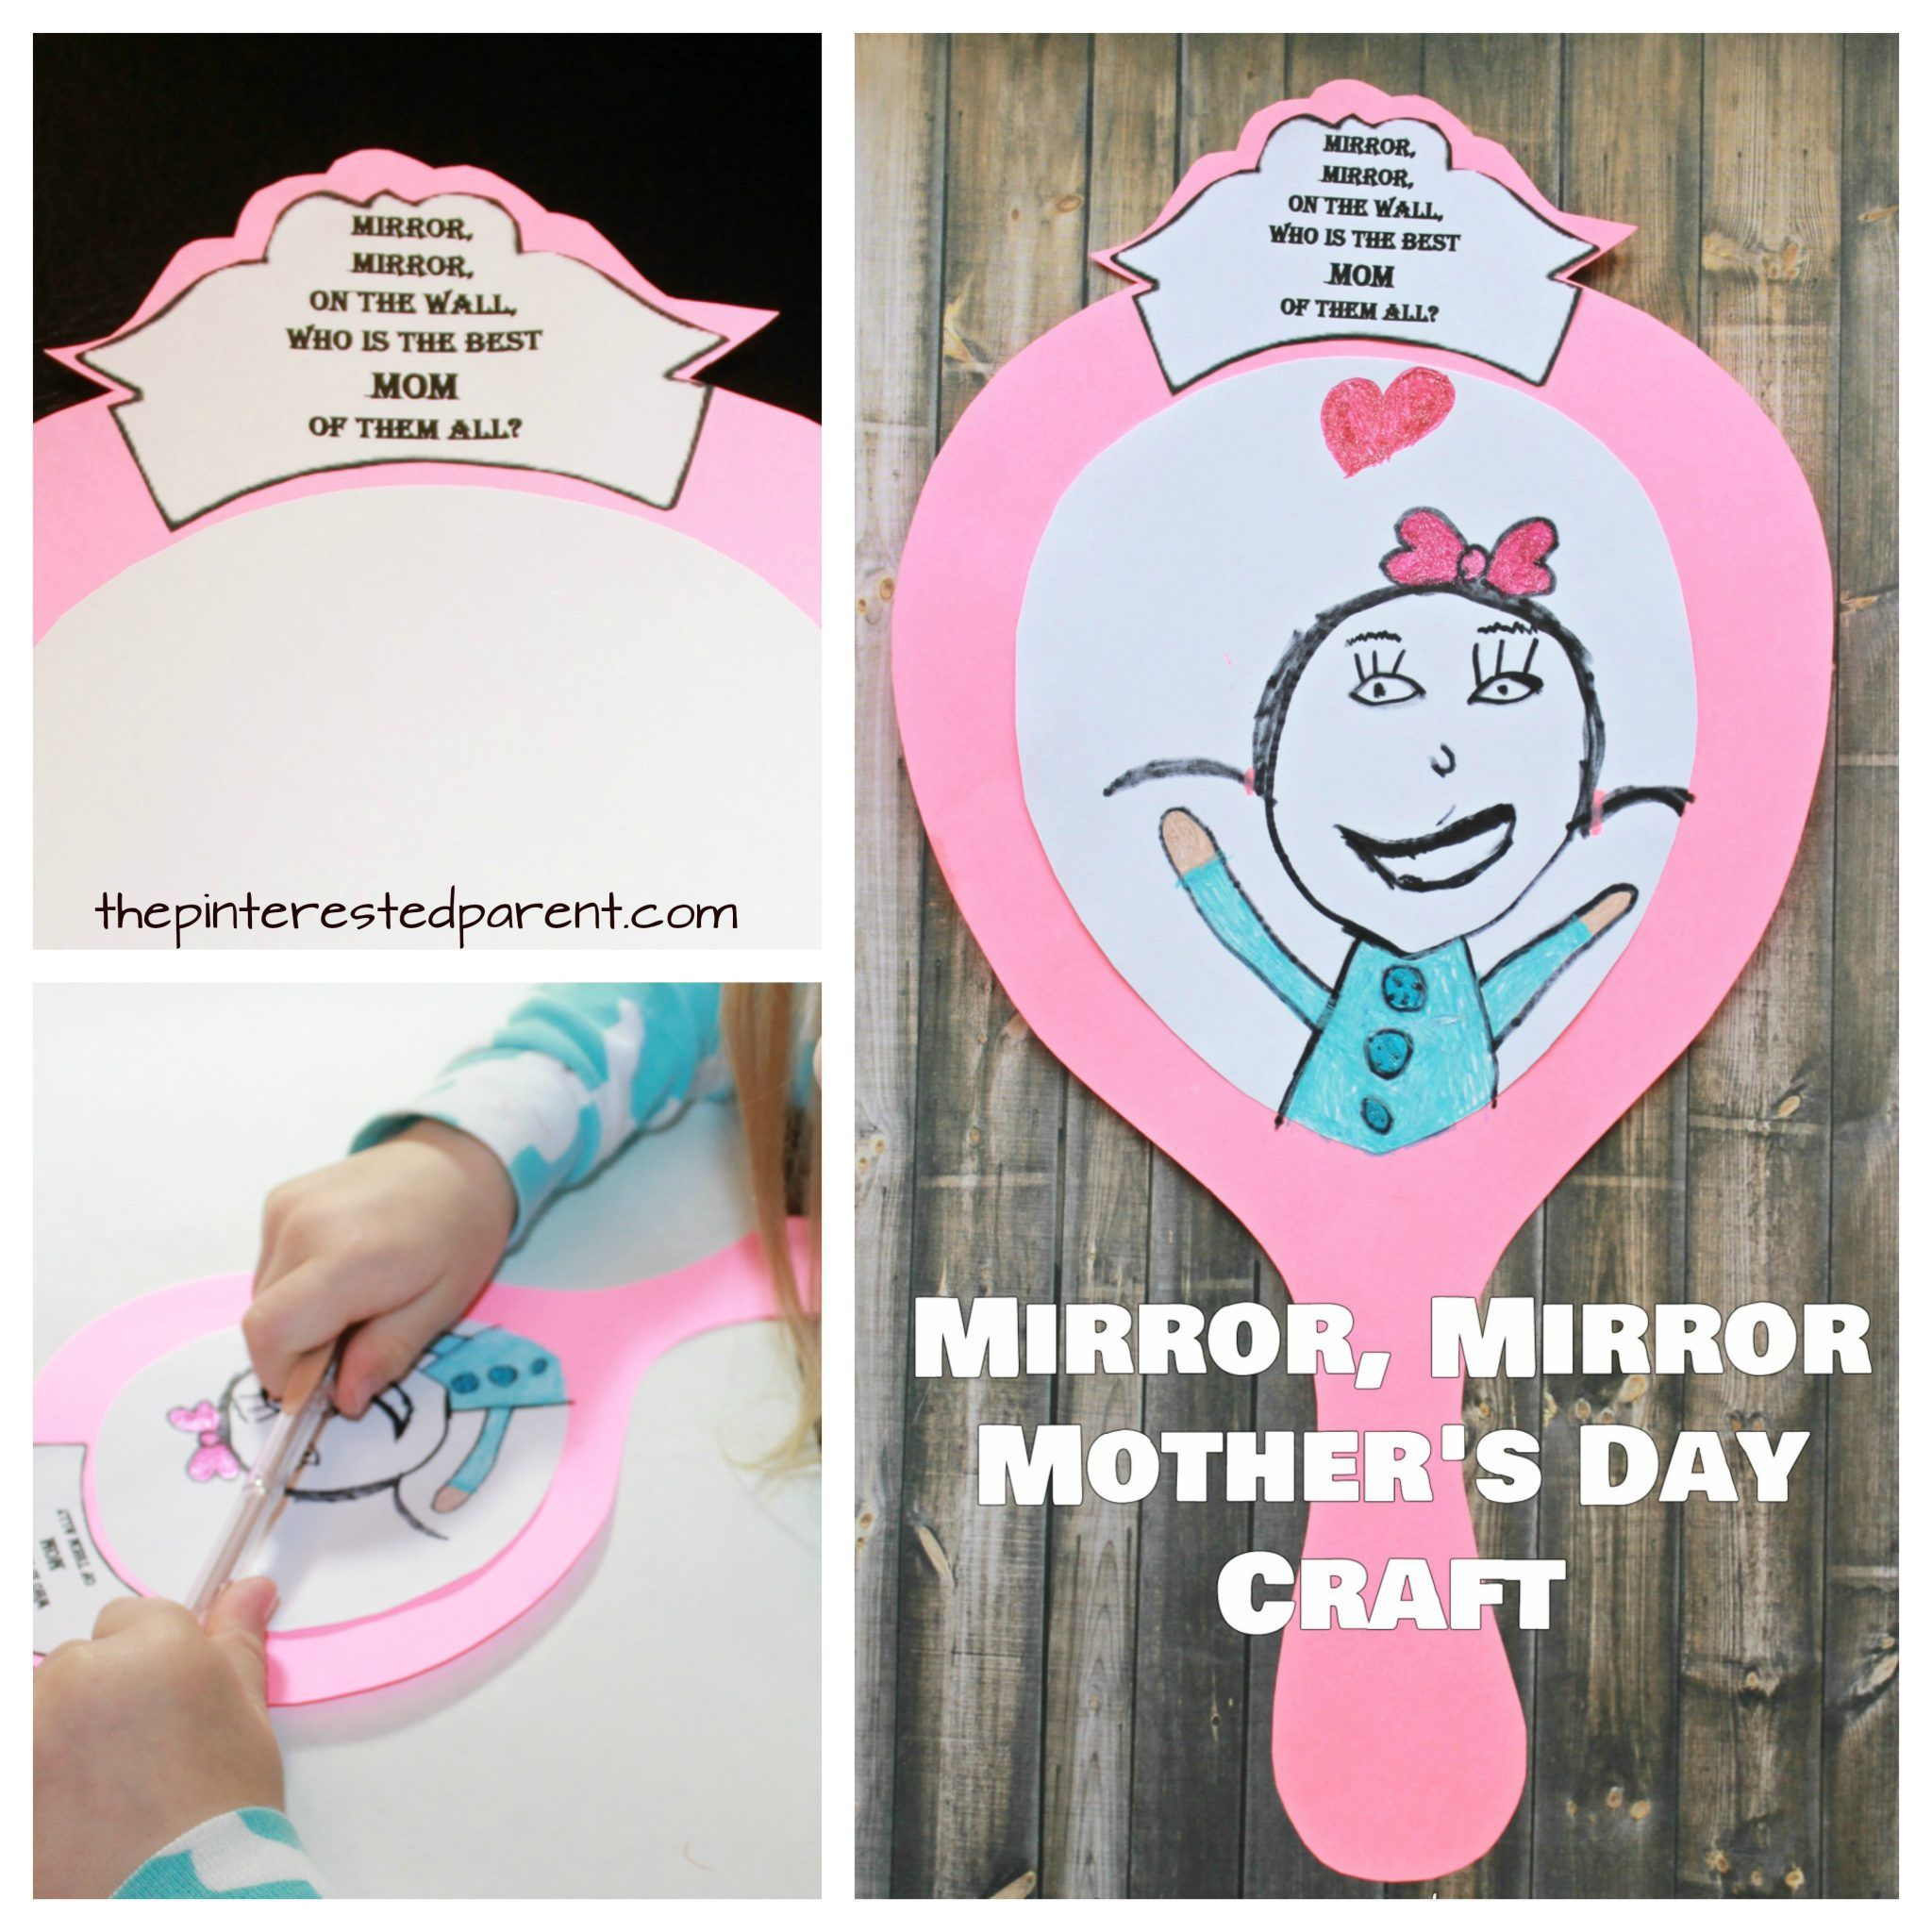 Free Printable Templates Mirror On The Wall Whos Best Mom Of Them All Mothers Day Craft And Gift Idea For Kids To Make